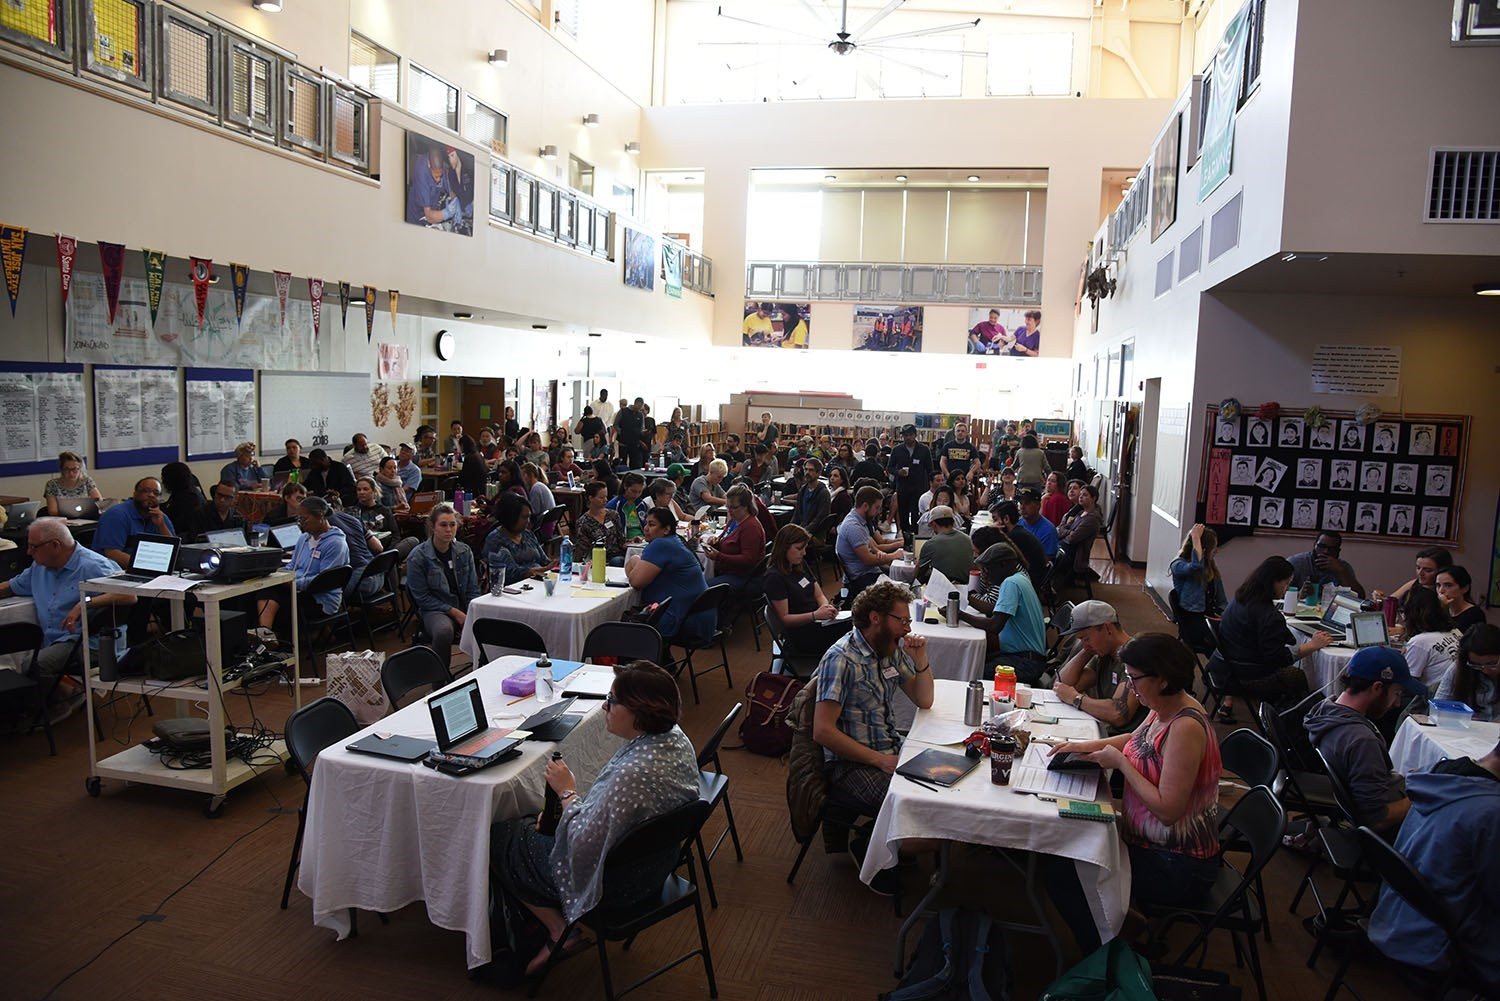 OUSD teachers gathered at MetWest High School for the Project Based Learning Institute